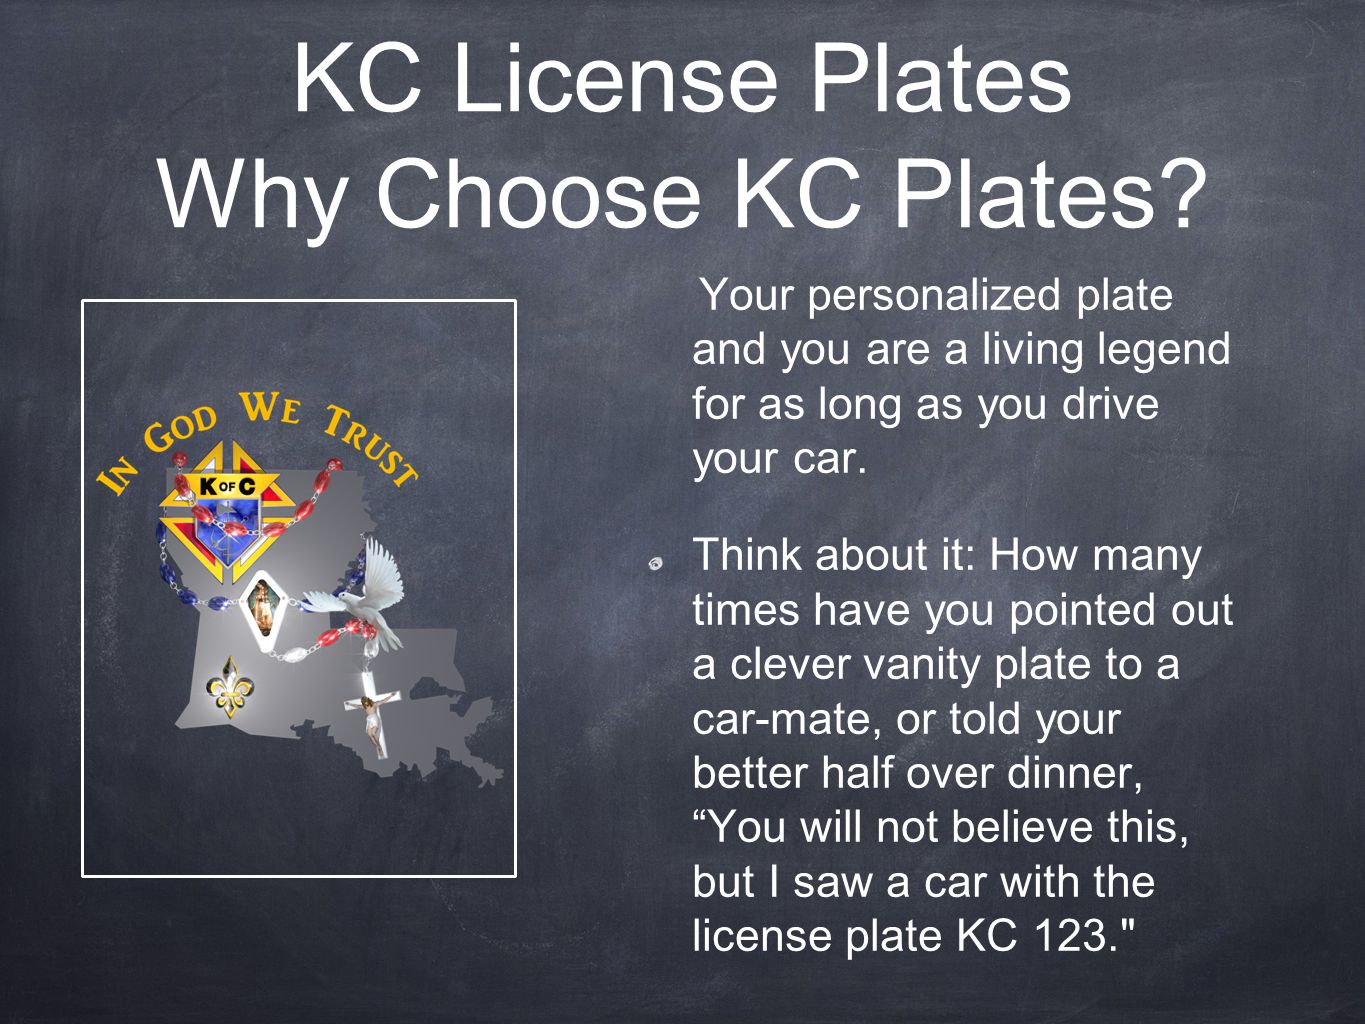 KC License Plates Why Choose KC Plates.